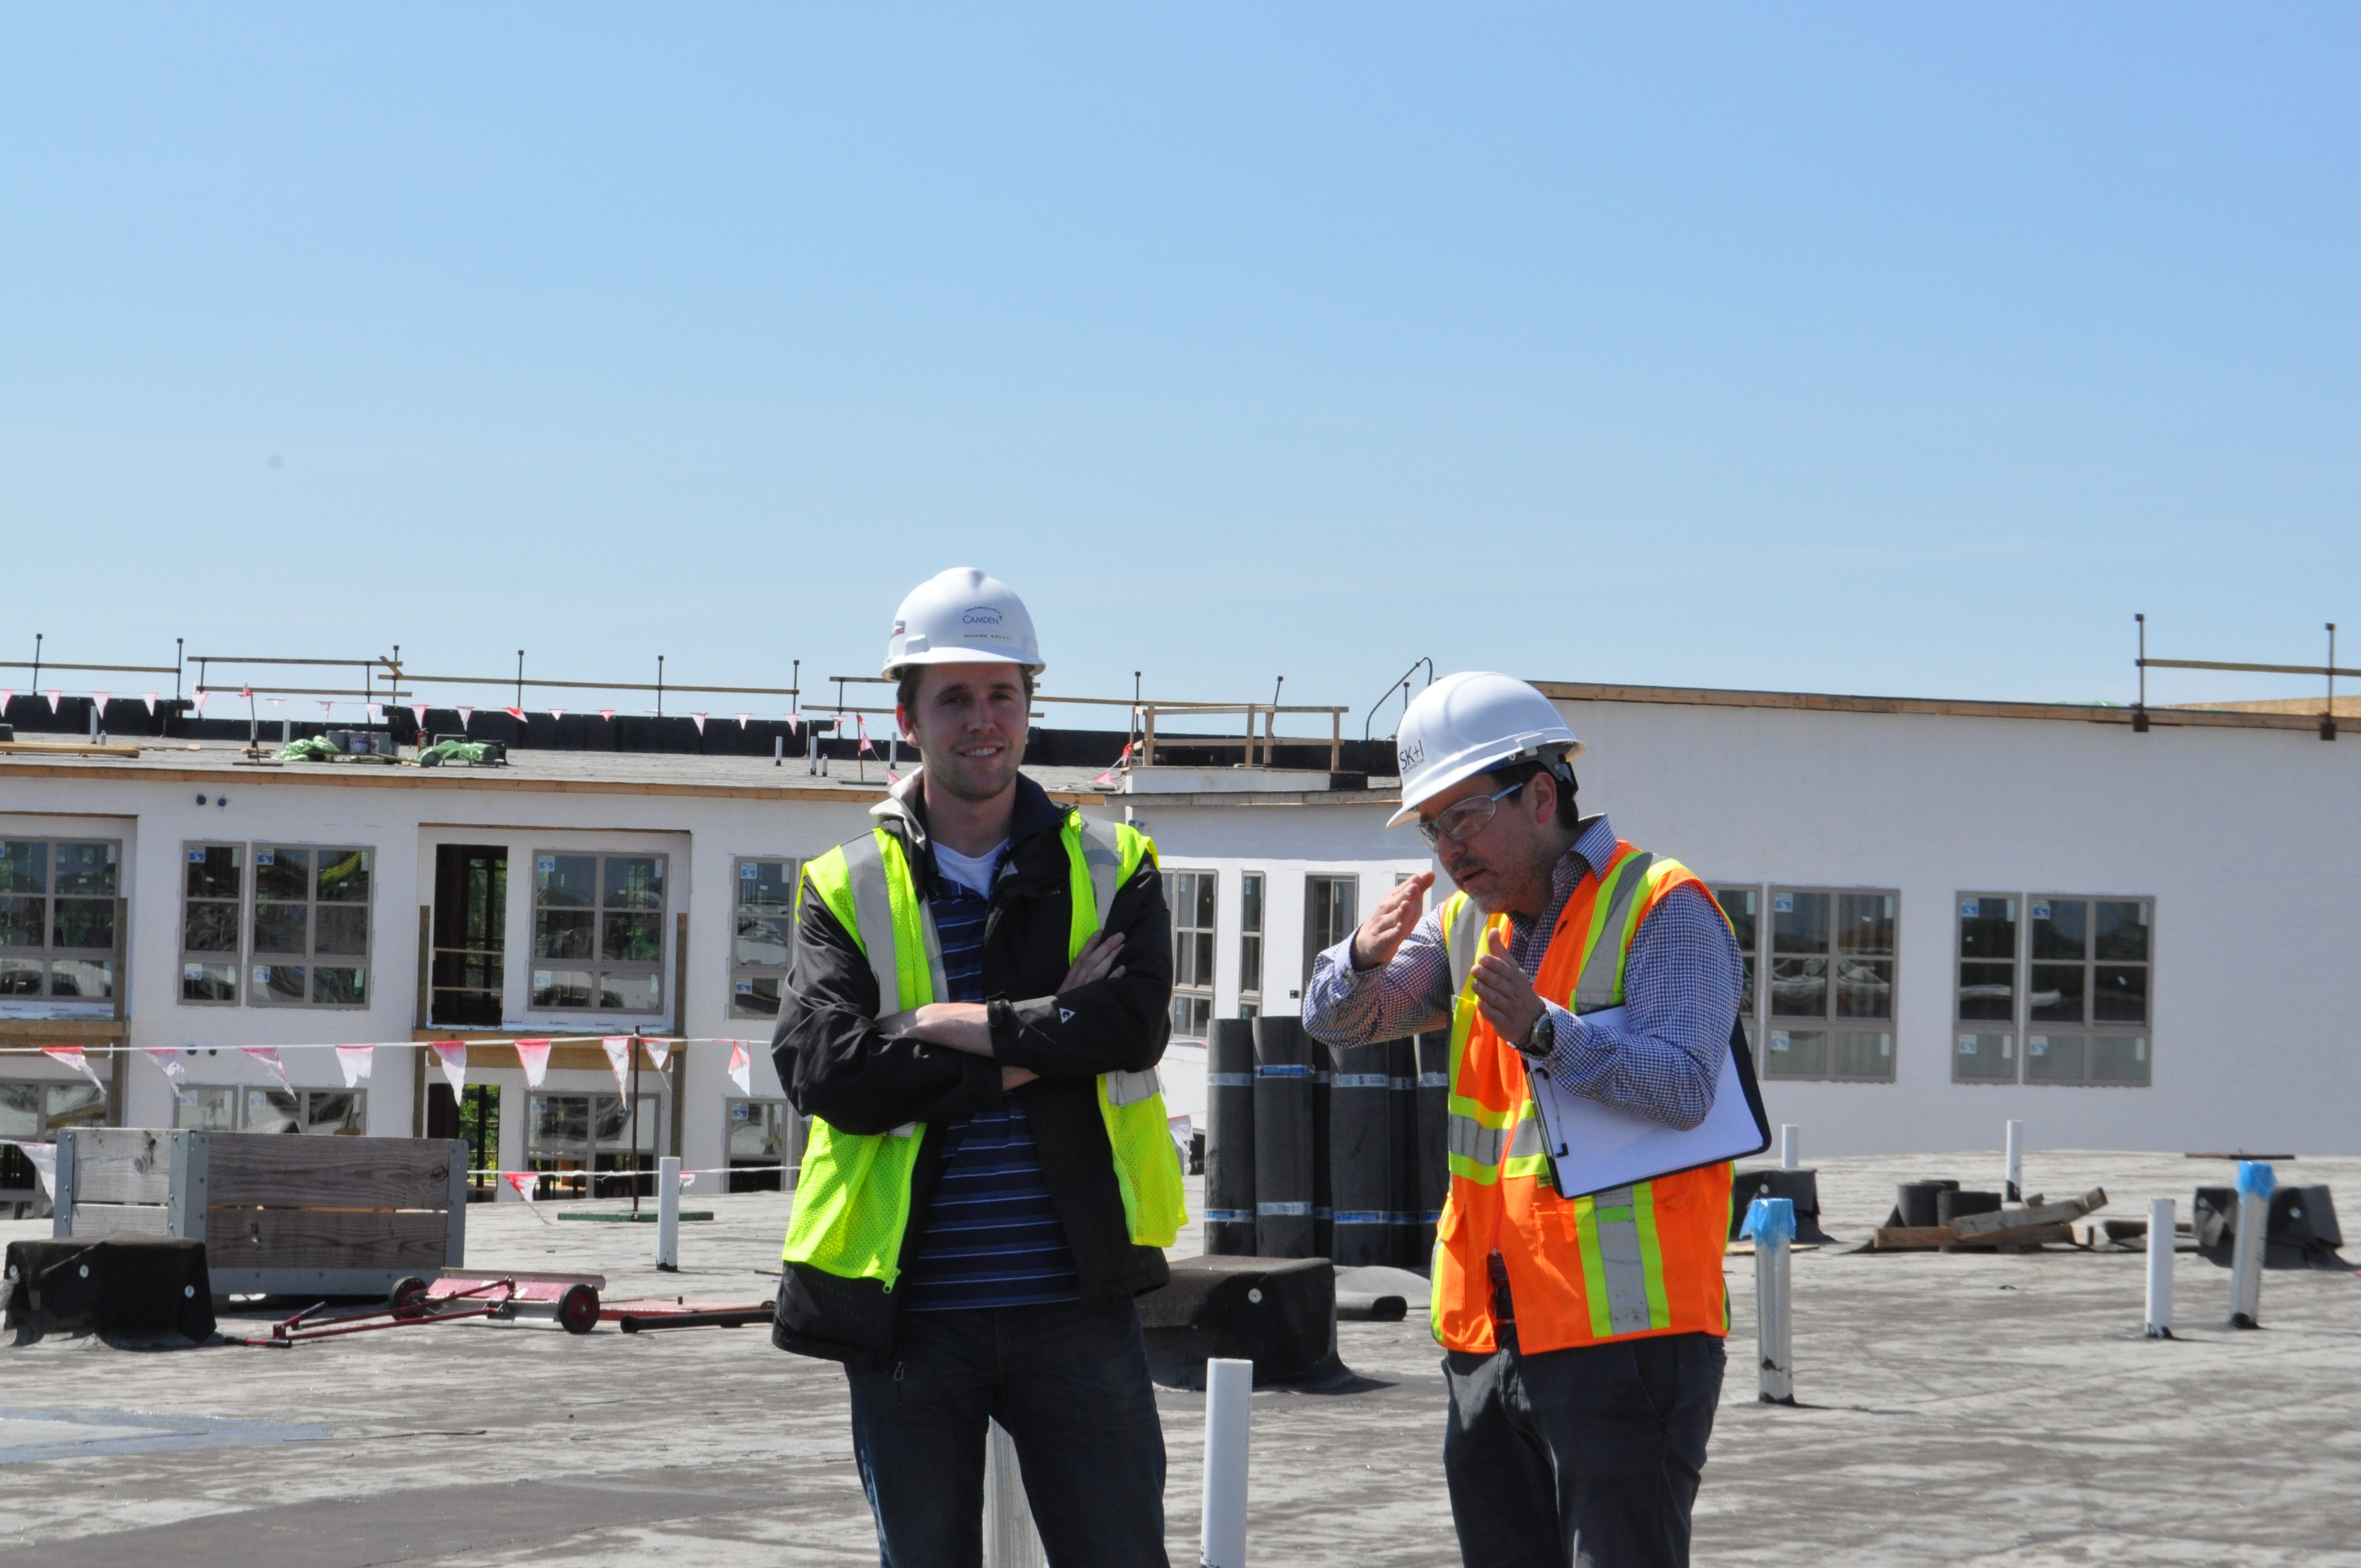 Camden's construction and development team are passionate about LEED. Image by Duane Canter.